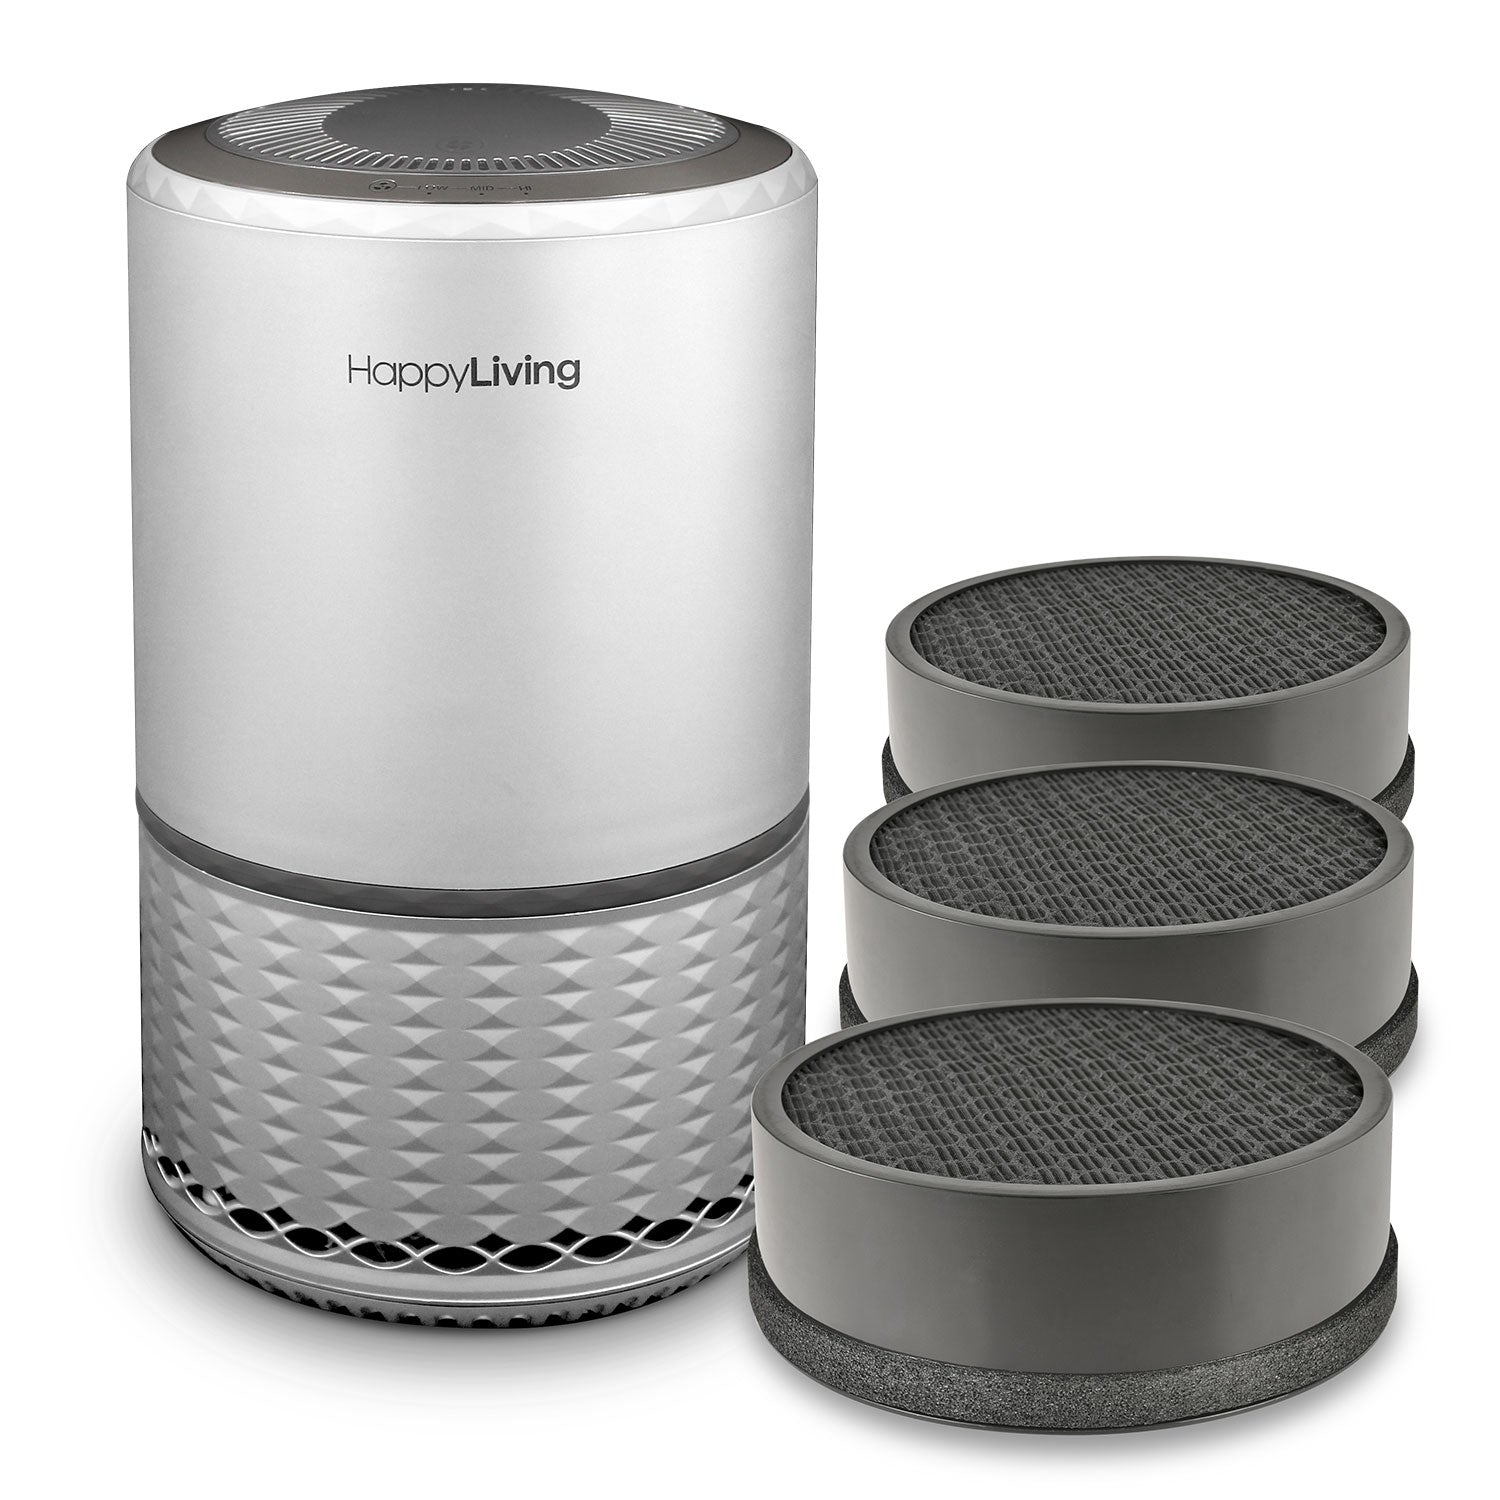 An image of a gray HL-001 air purifier bundle.